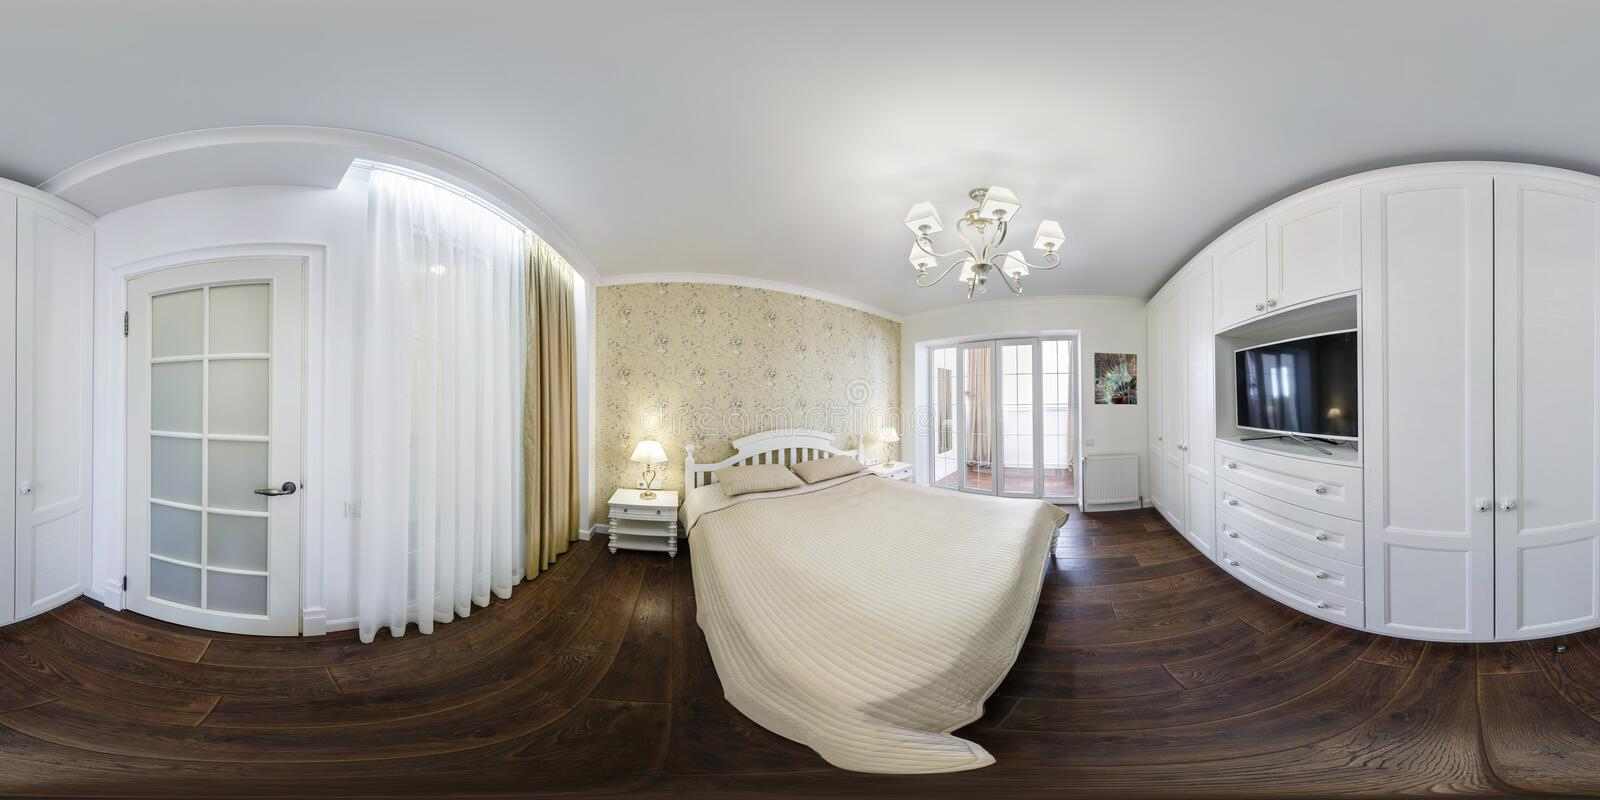 MINSK, BELARUS - AUGUST, 2018: full seamless spherical hdri panorama 360 in in interior bedroom of modern flat apartments in royalty free stock photo